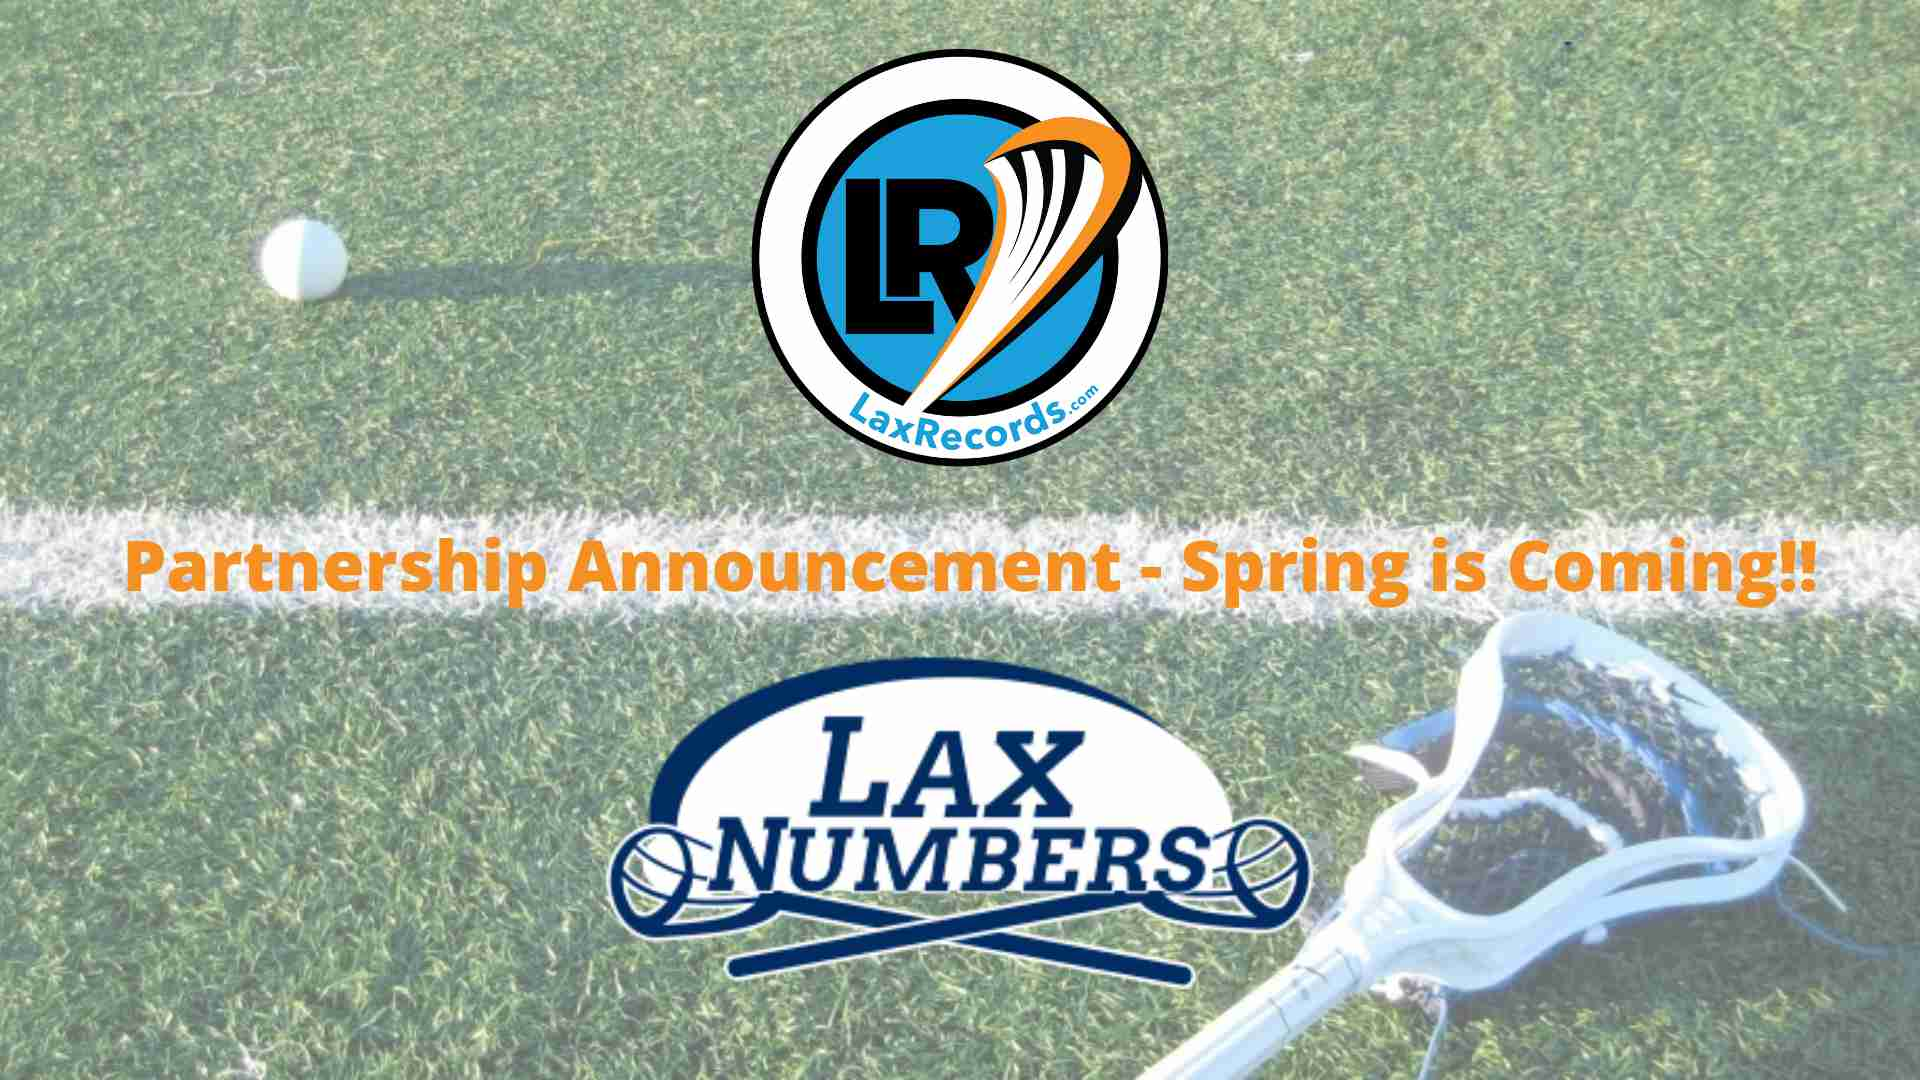 LaxRecords.com Is Partnering With Laxnumbers.com